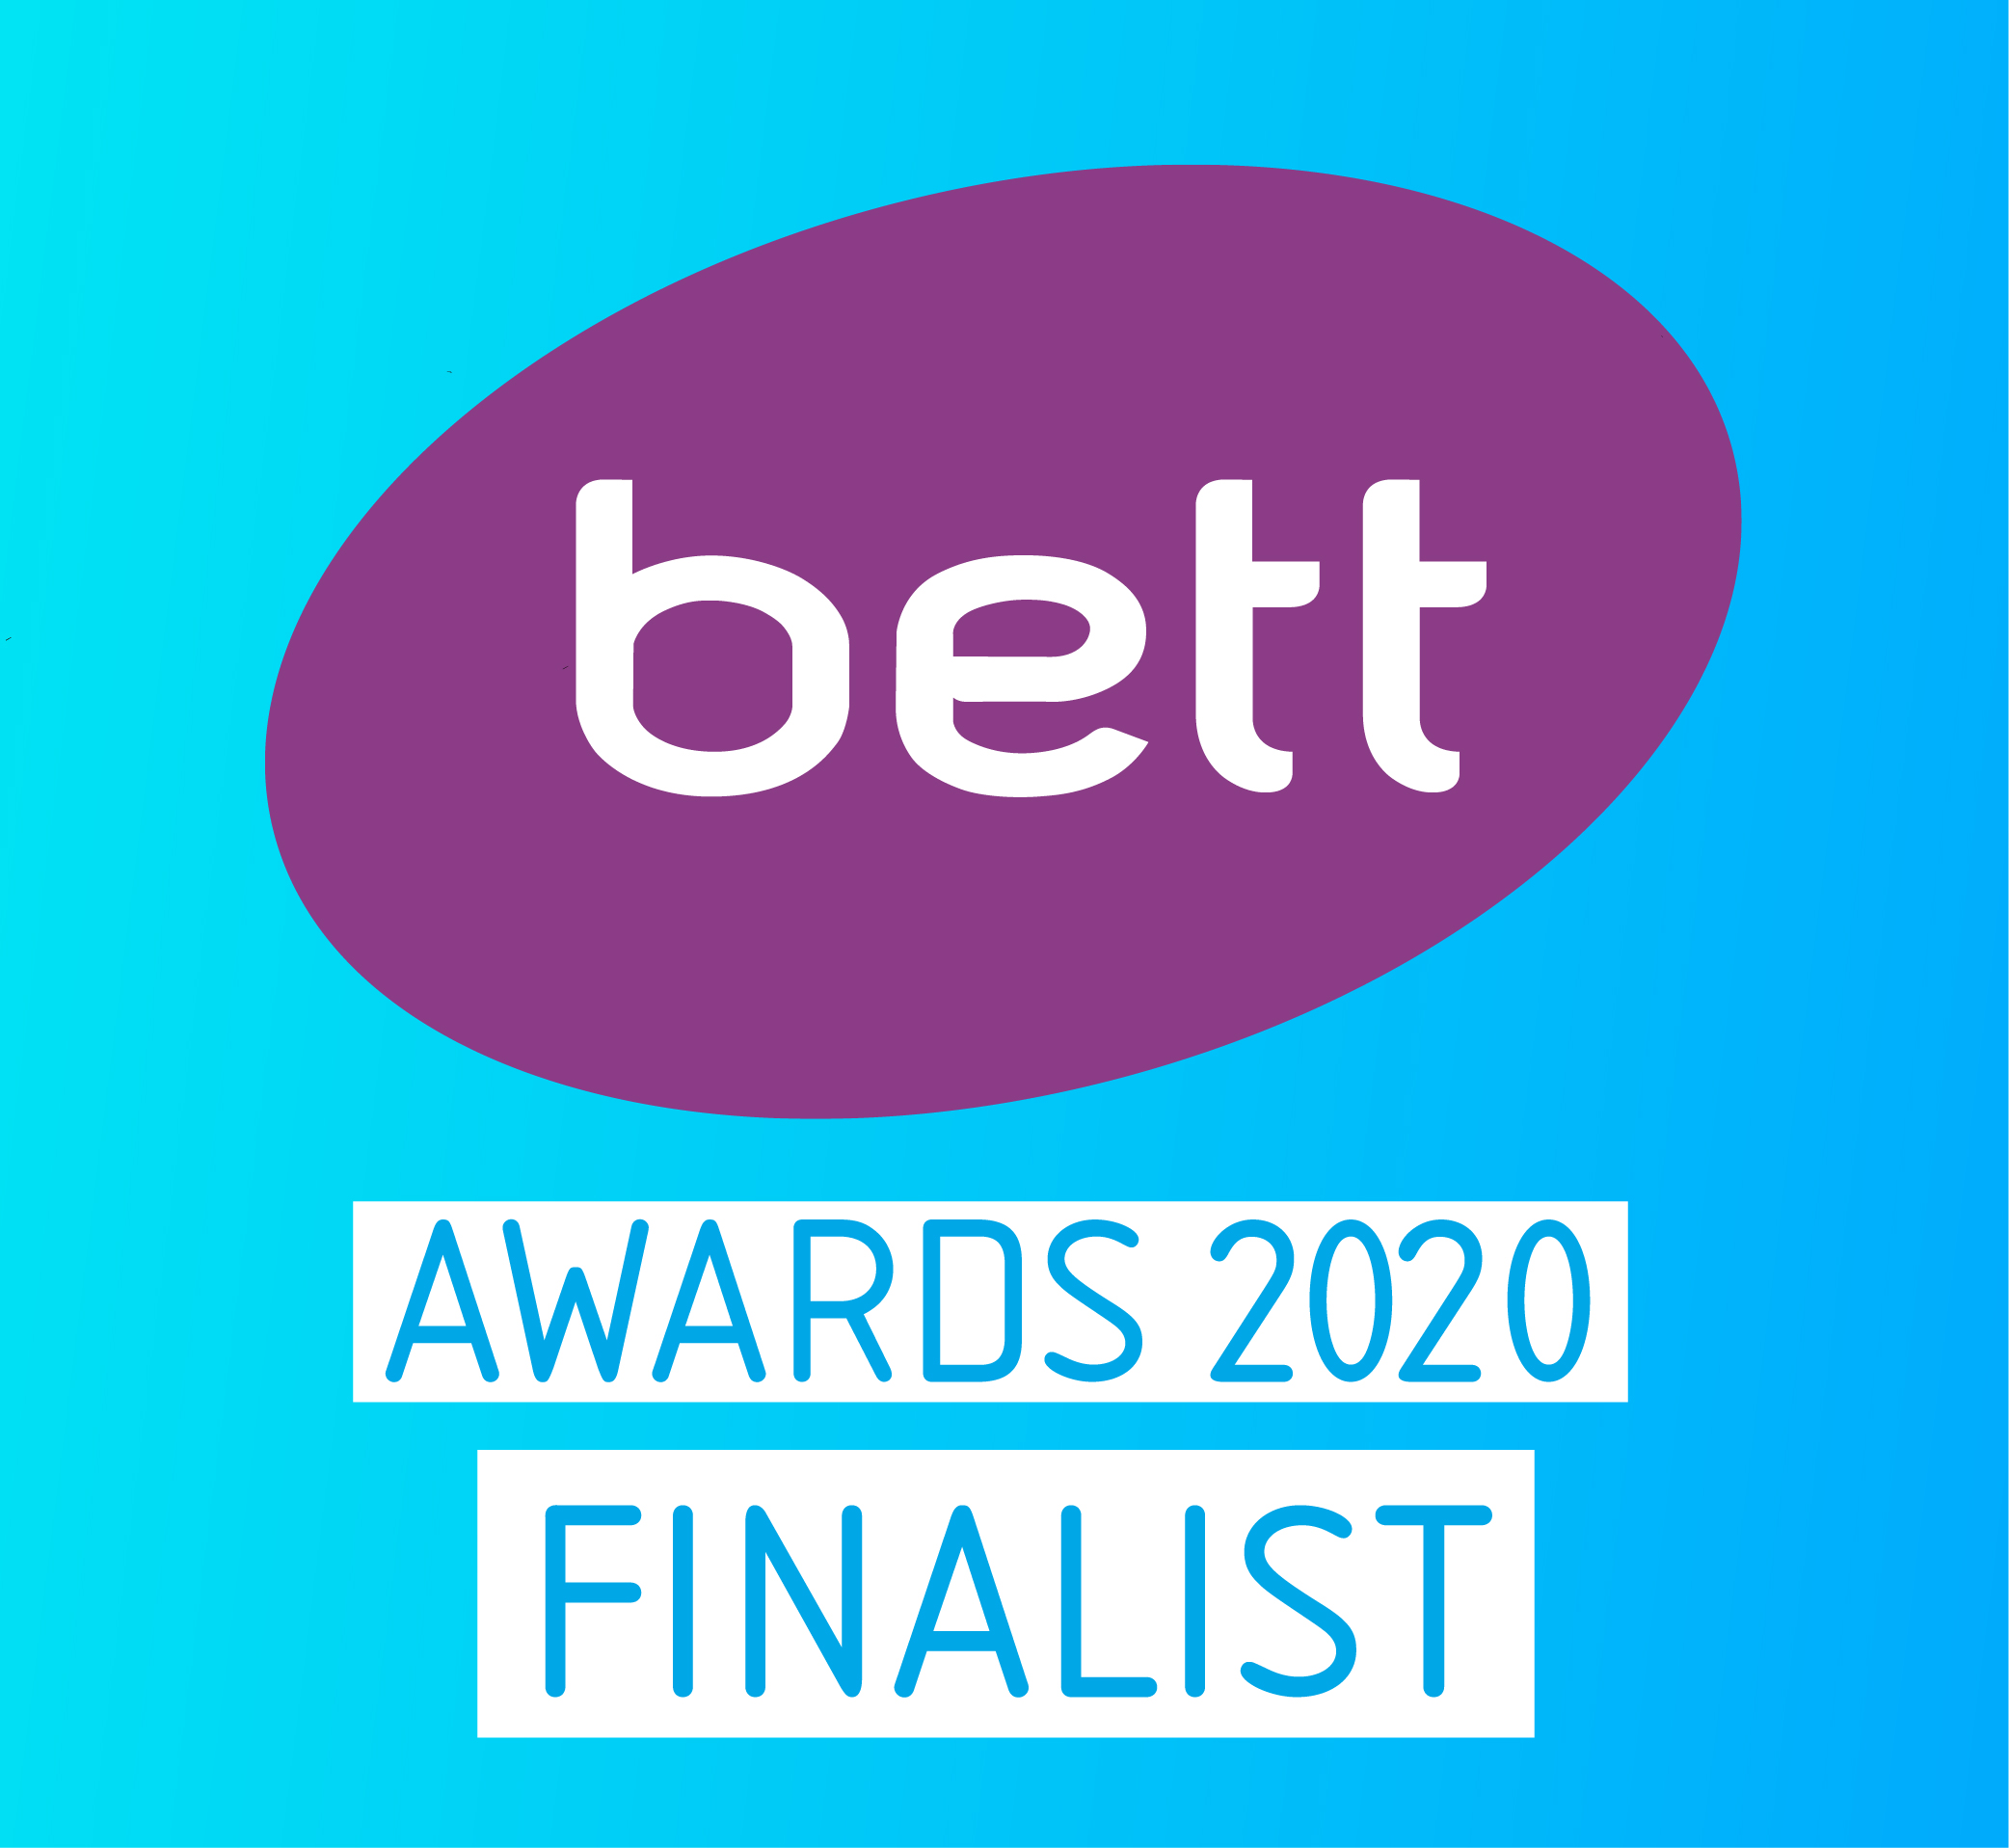 Bett Awards 2020 FInalist